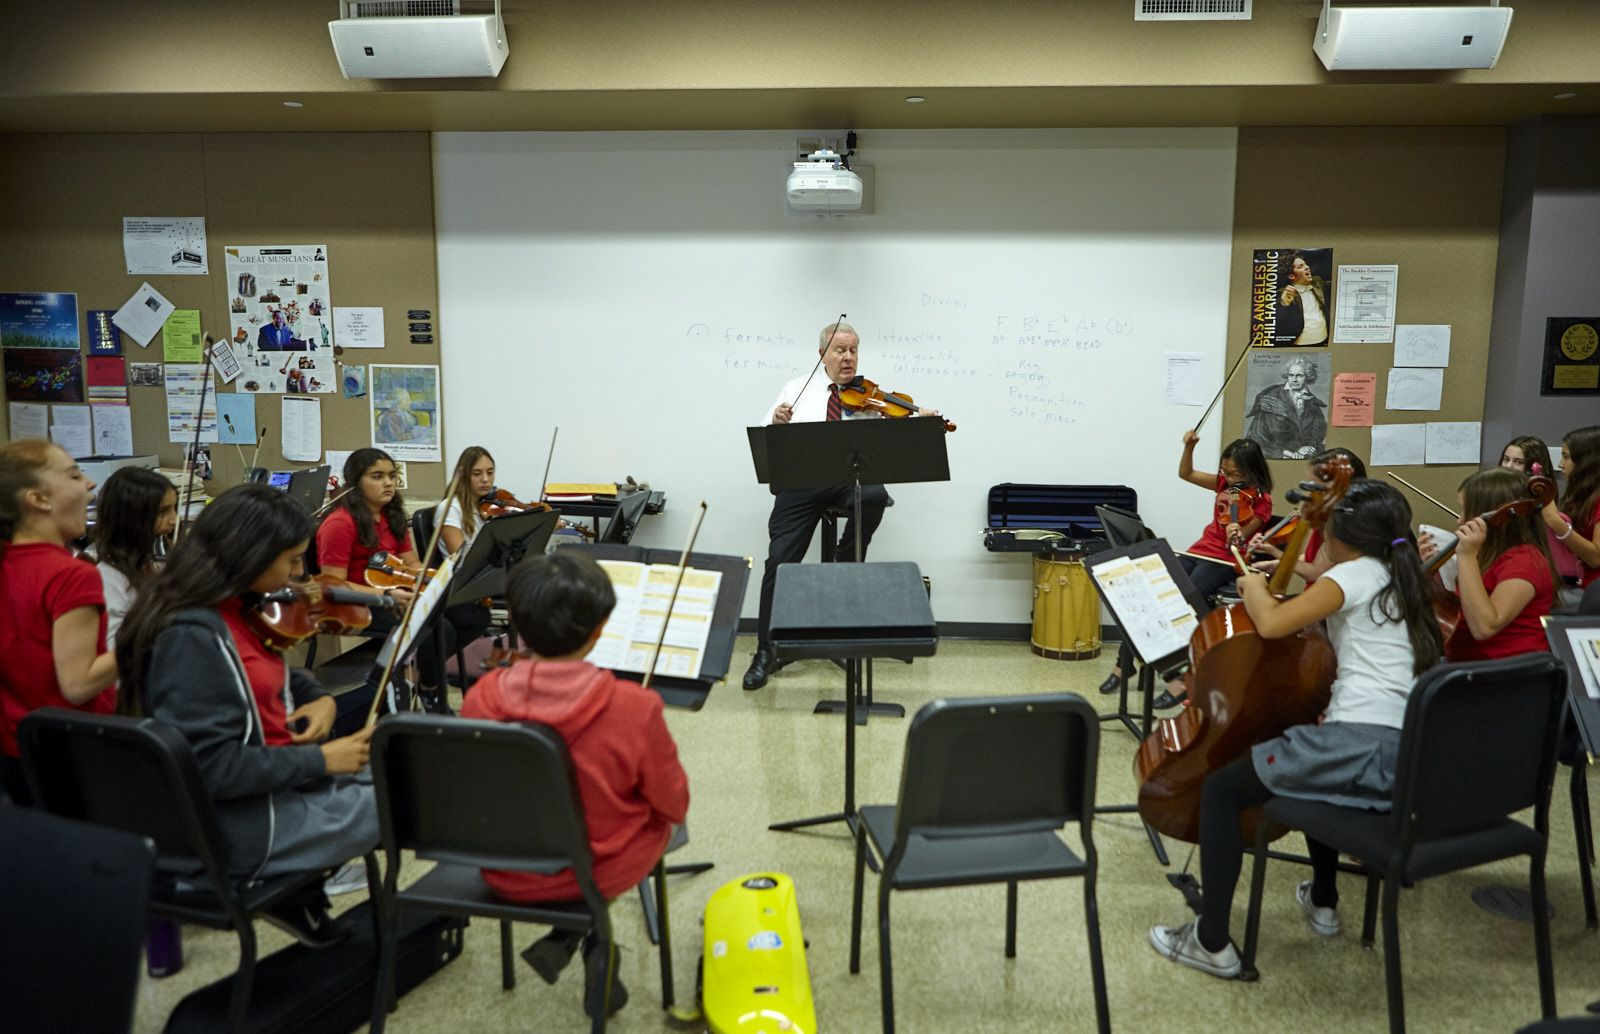 Orchestra and band for fourth through twelfth grade both have dedicated classrooms in The Marciano Family Academic and Performing Arts Building and the Lower School buildings, respectively.